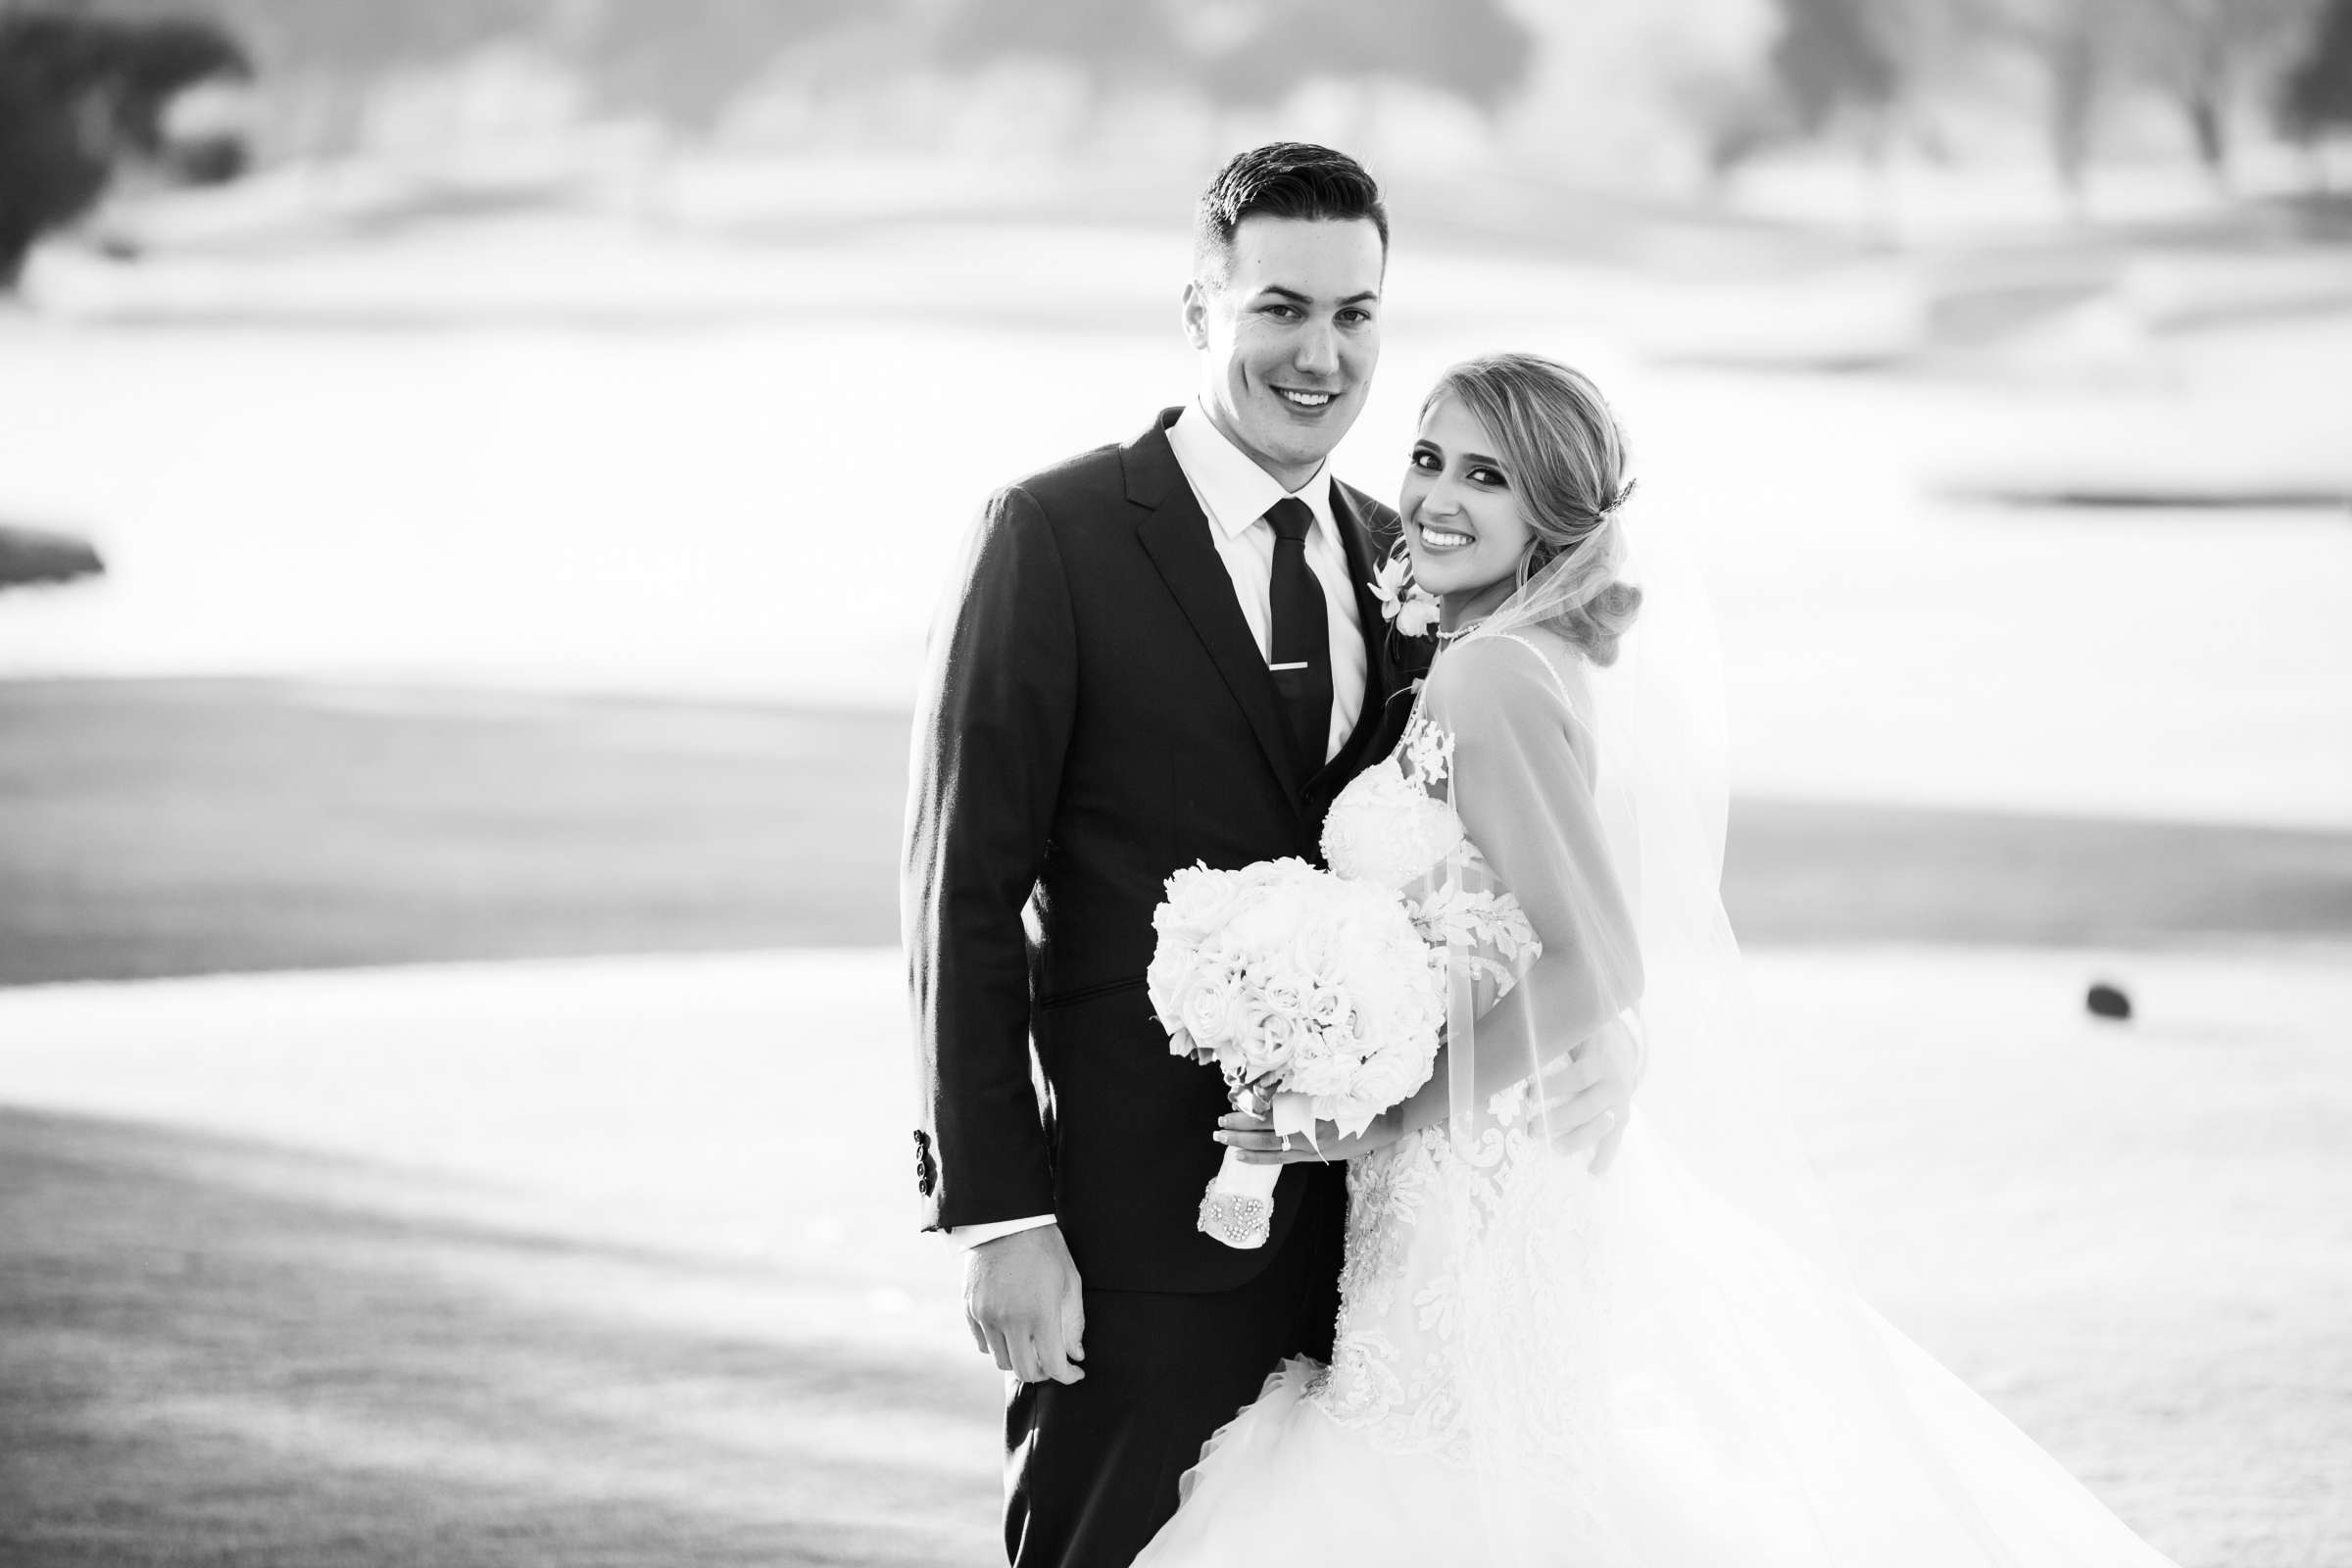 Fairbanks Ranch Country Club Wedding coordinated by Monarch Weddings, Gabriella and Kyle Wedding Photo #104 by True Photography